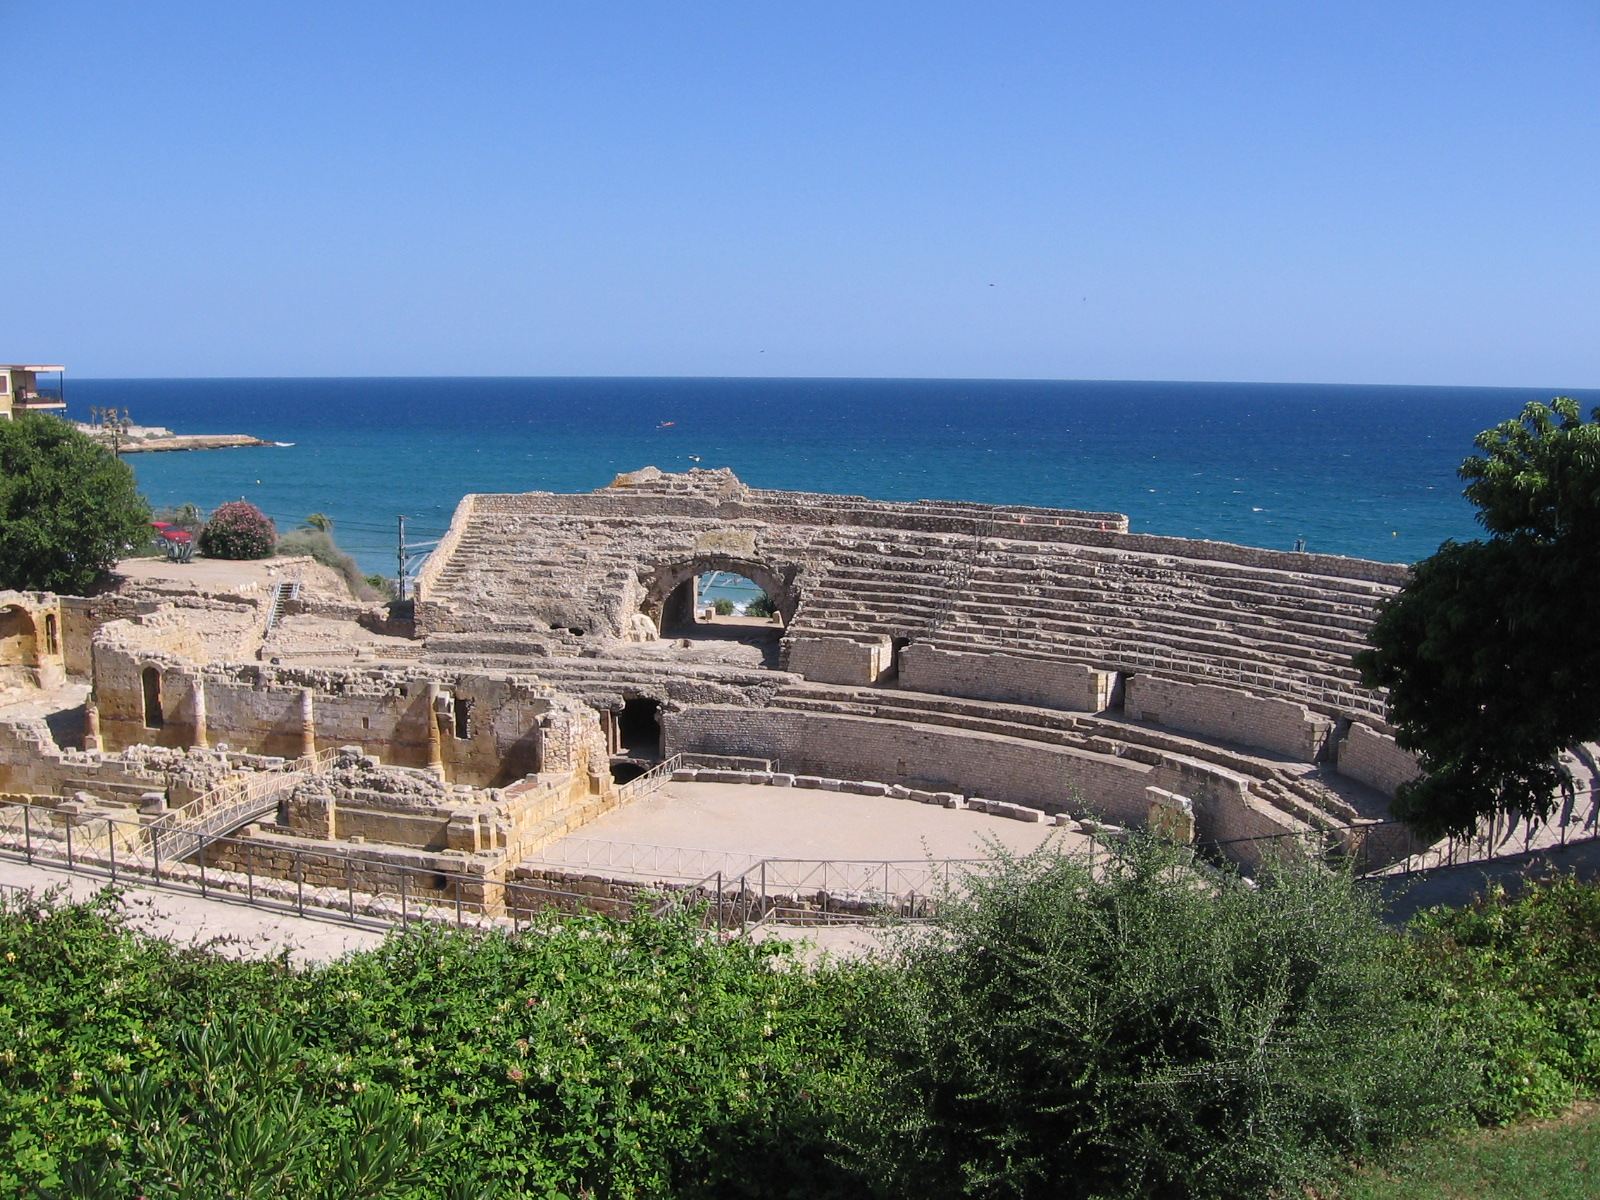 Our area - The Roman amphitheater in Tarragona